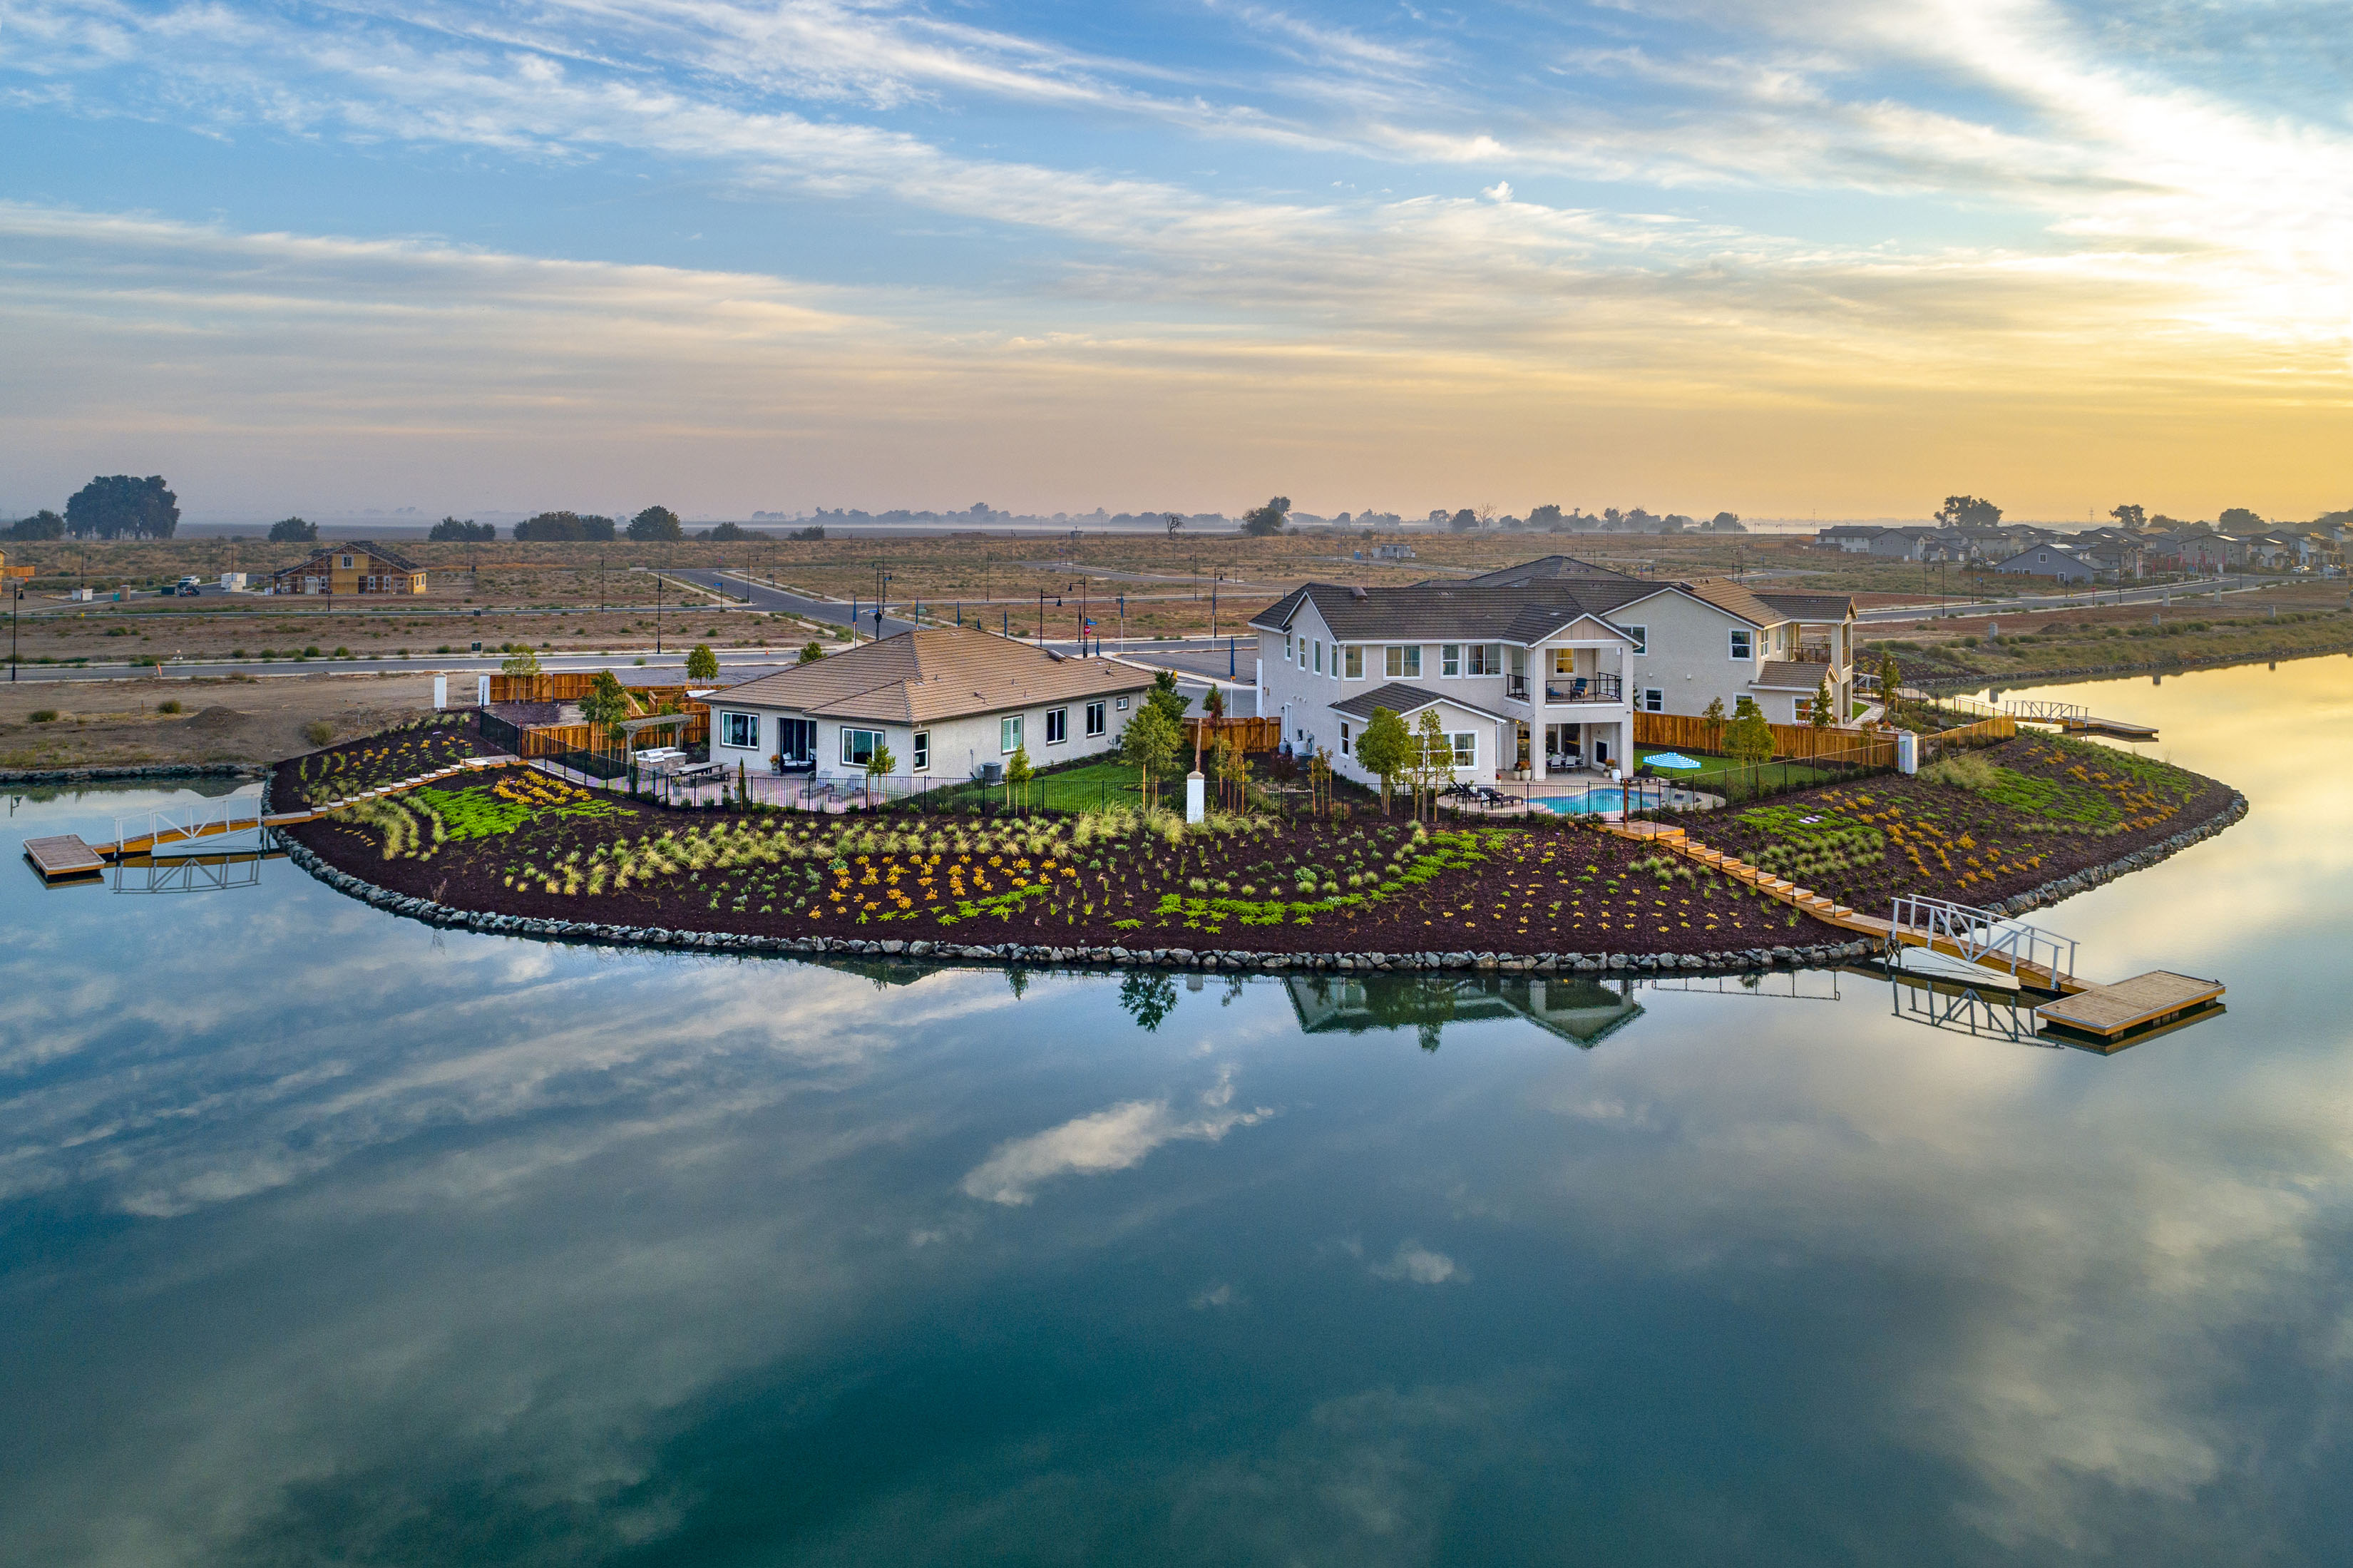 Discover Waterside Living at New River Islands Communities by Kiper Homes